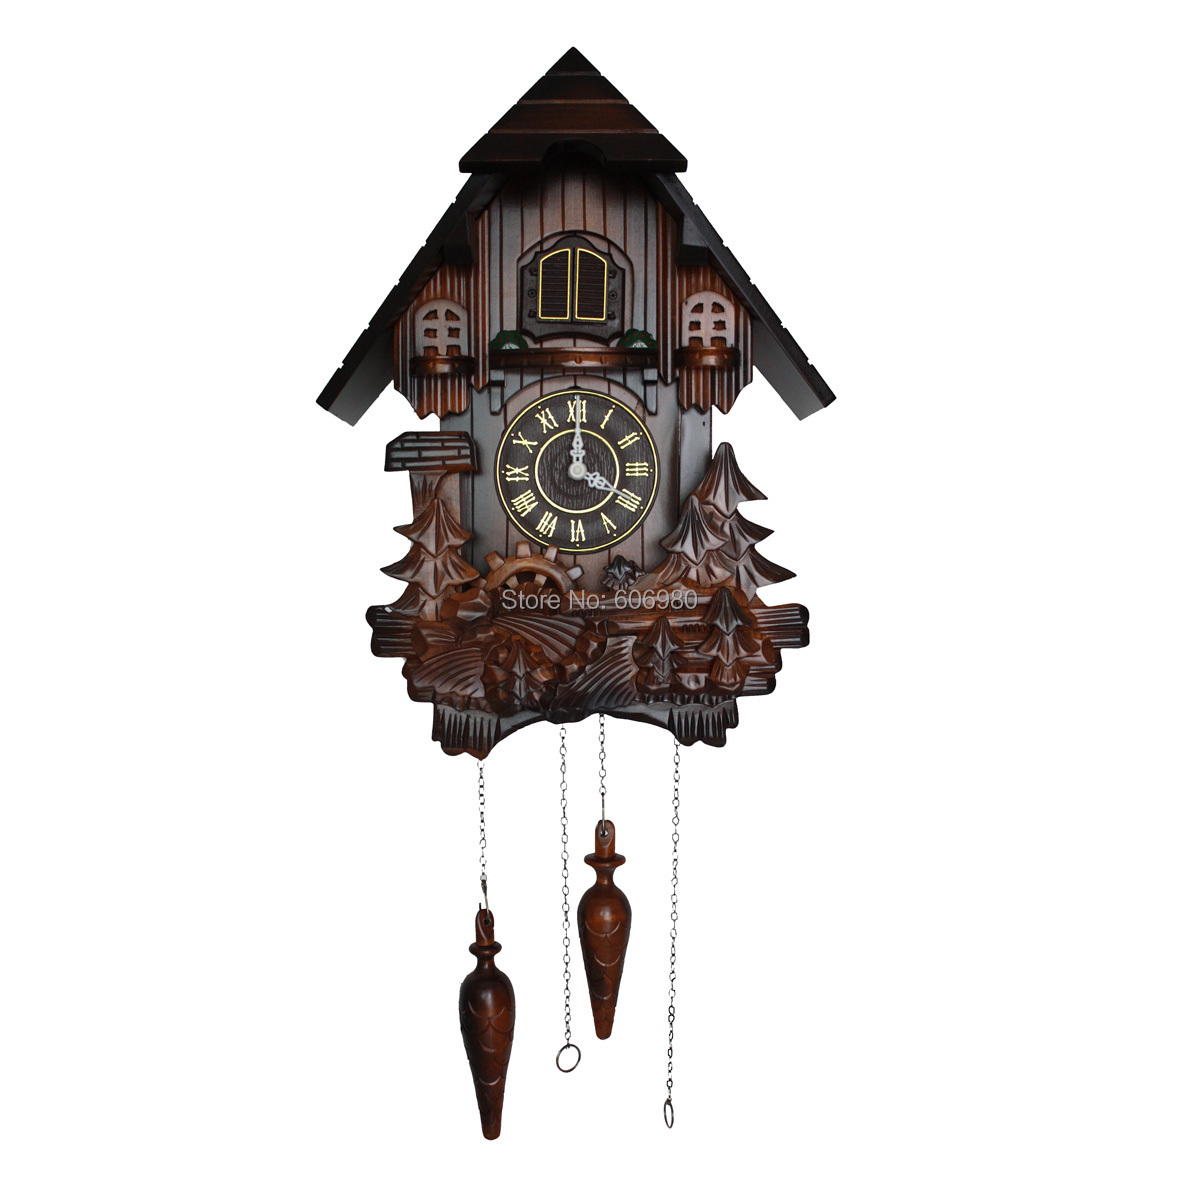 Affordable Cuckoo Clocks Online Get Cheap 수제 뻐꾸기 시계 Aliexpress Alibaba Group